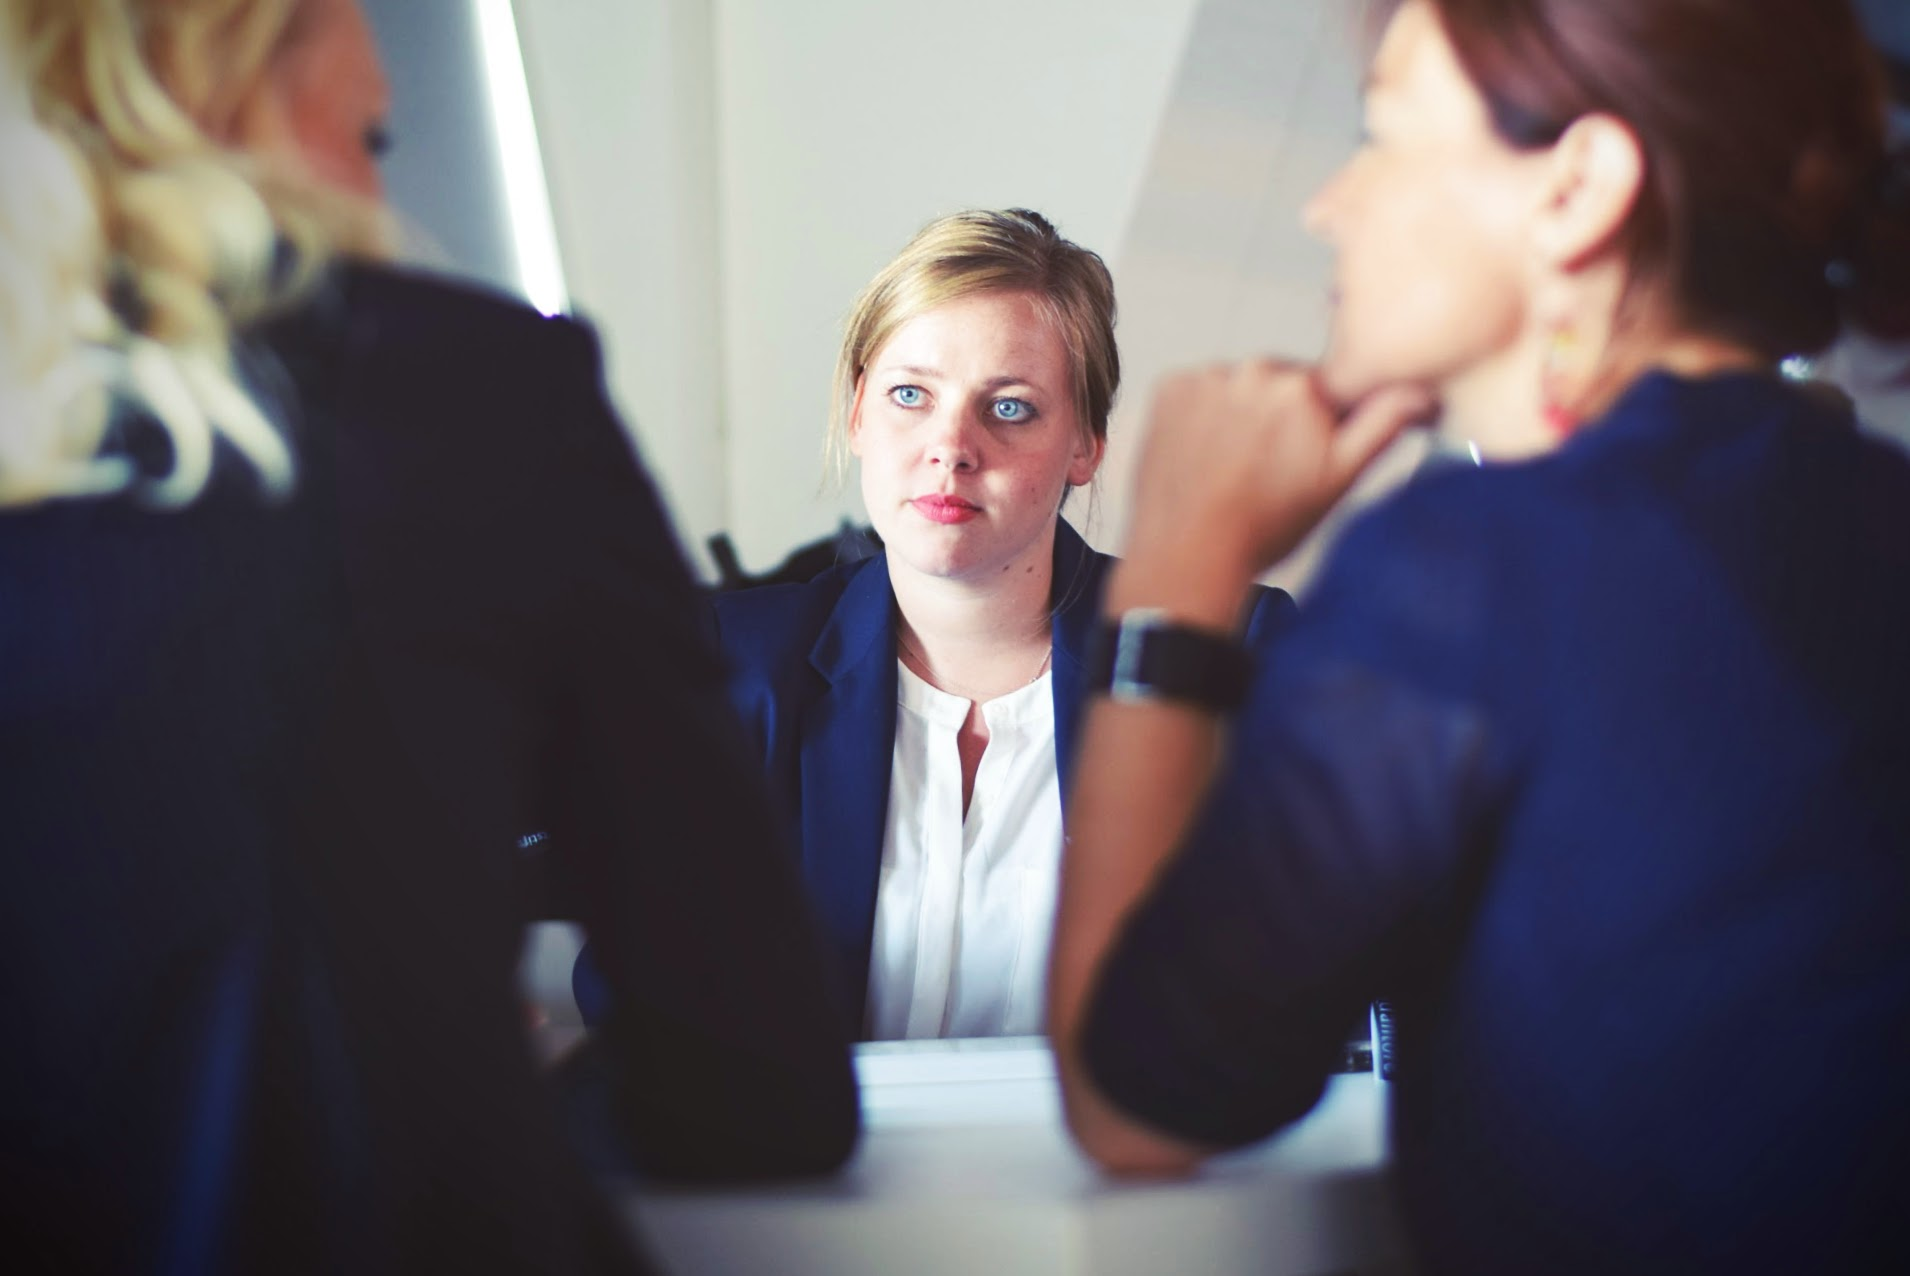 5 Things To Avoid When Interviewing On A College Campus